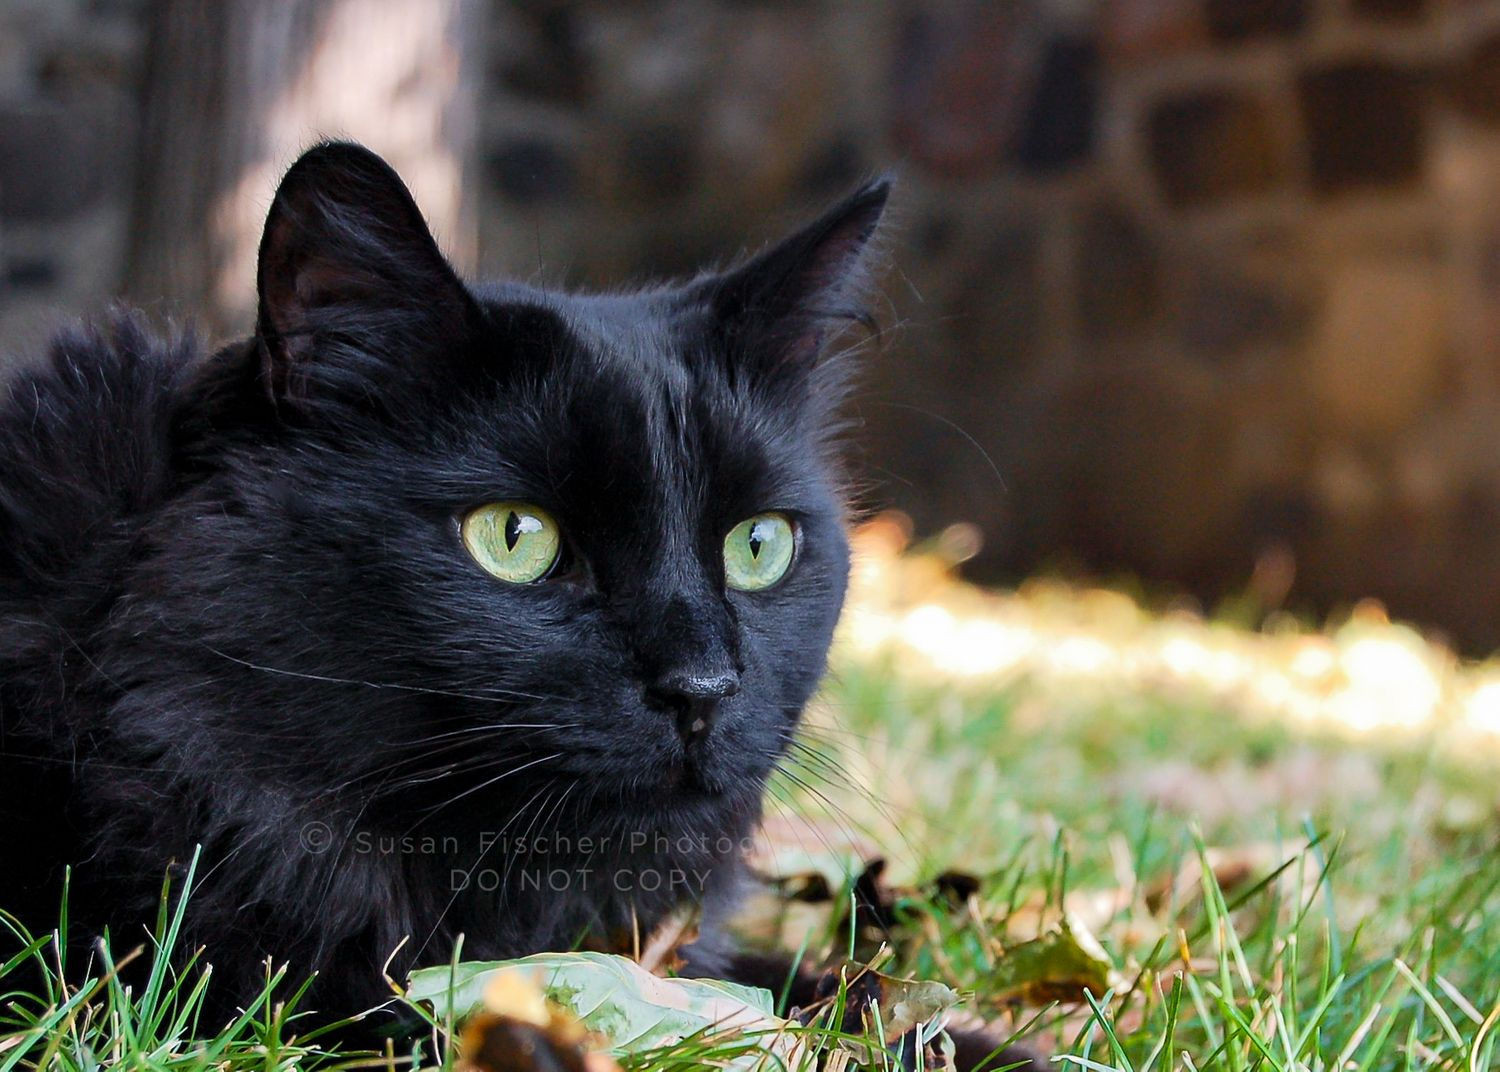 black cat with green eyes lying in grass and leaves